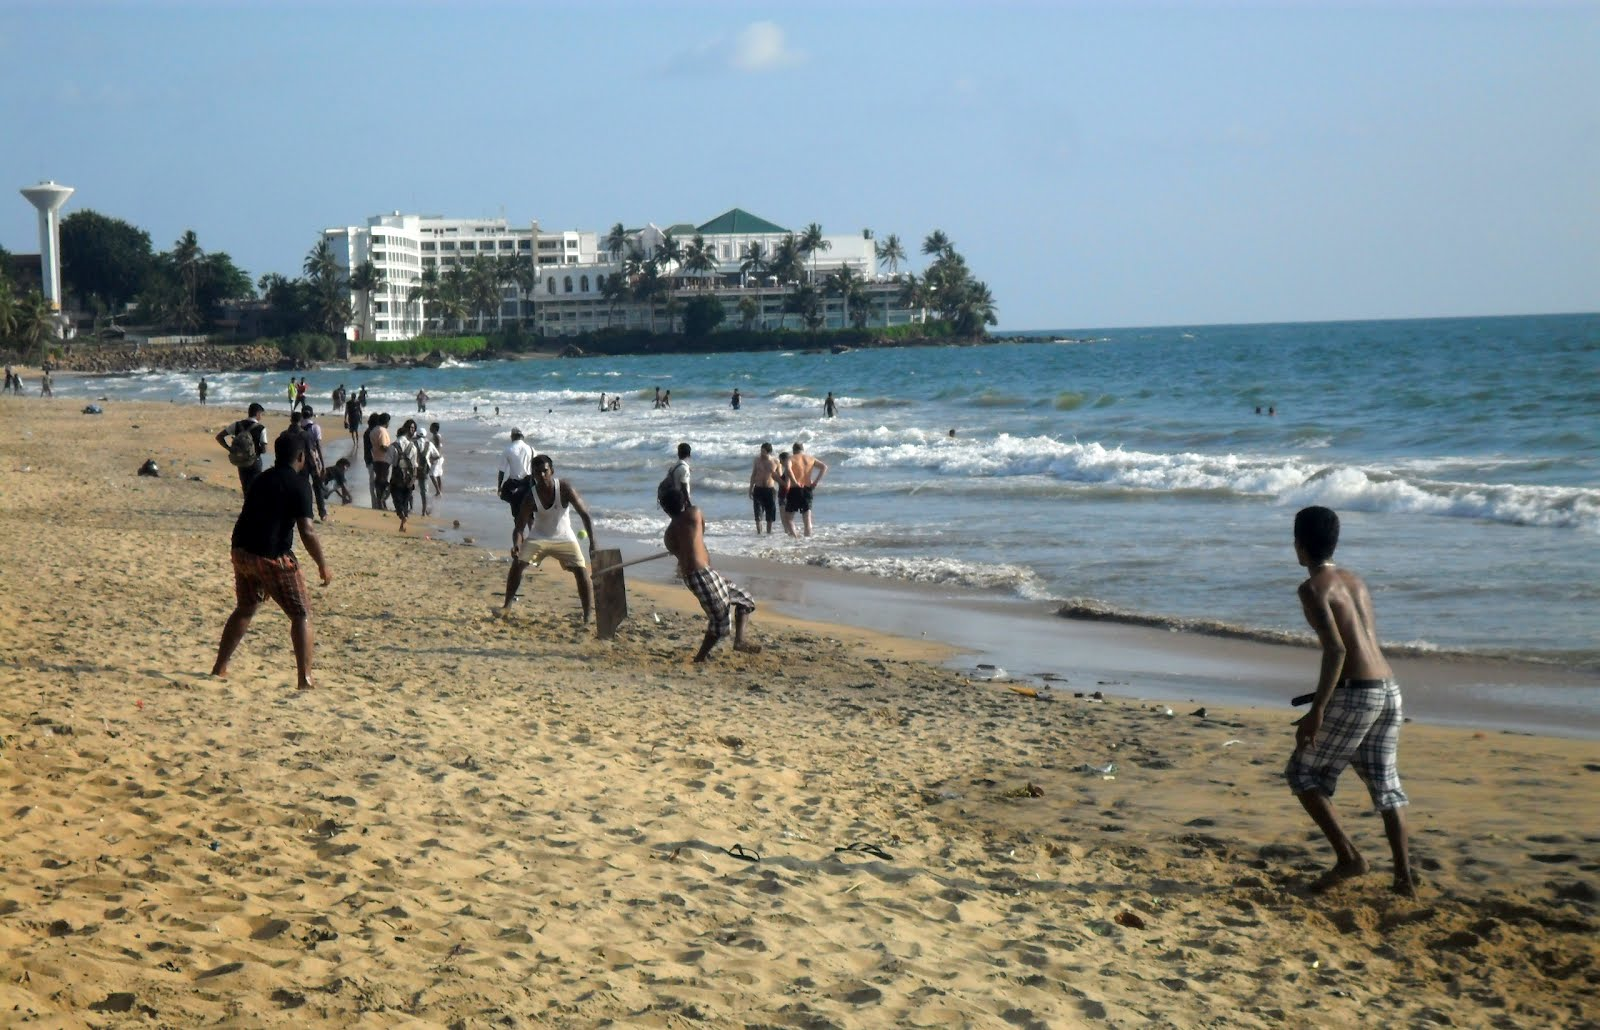 Mount Lavinia Sri Lanka  city pictures gallery : There were some important cricket events going on during my visit ...